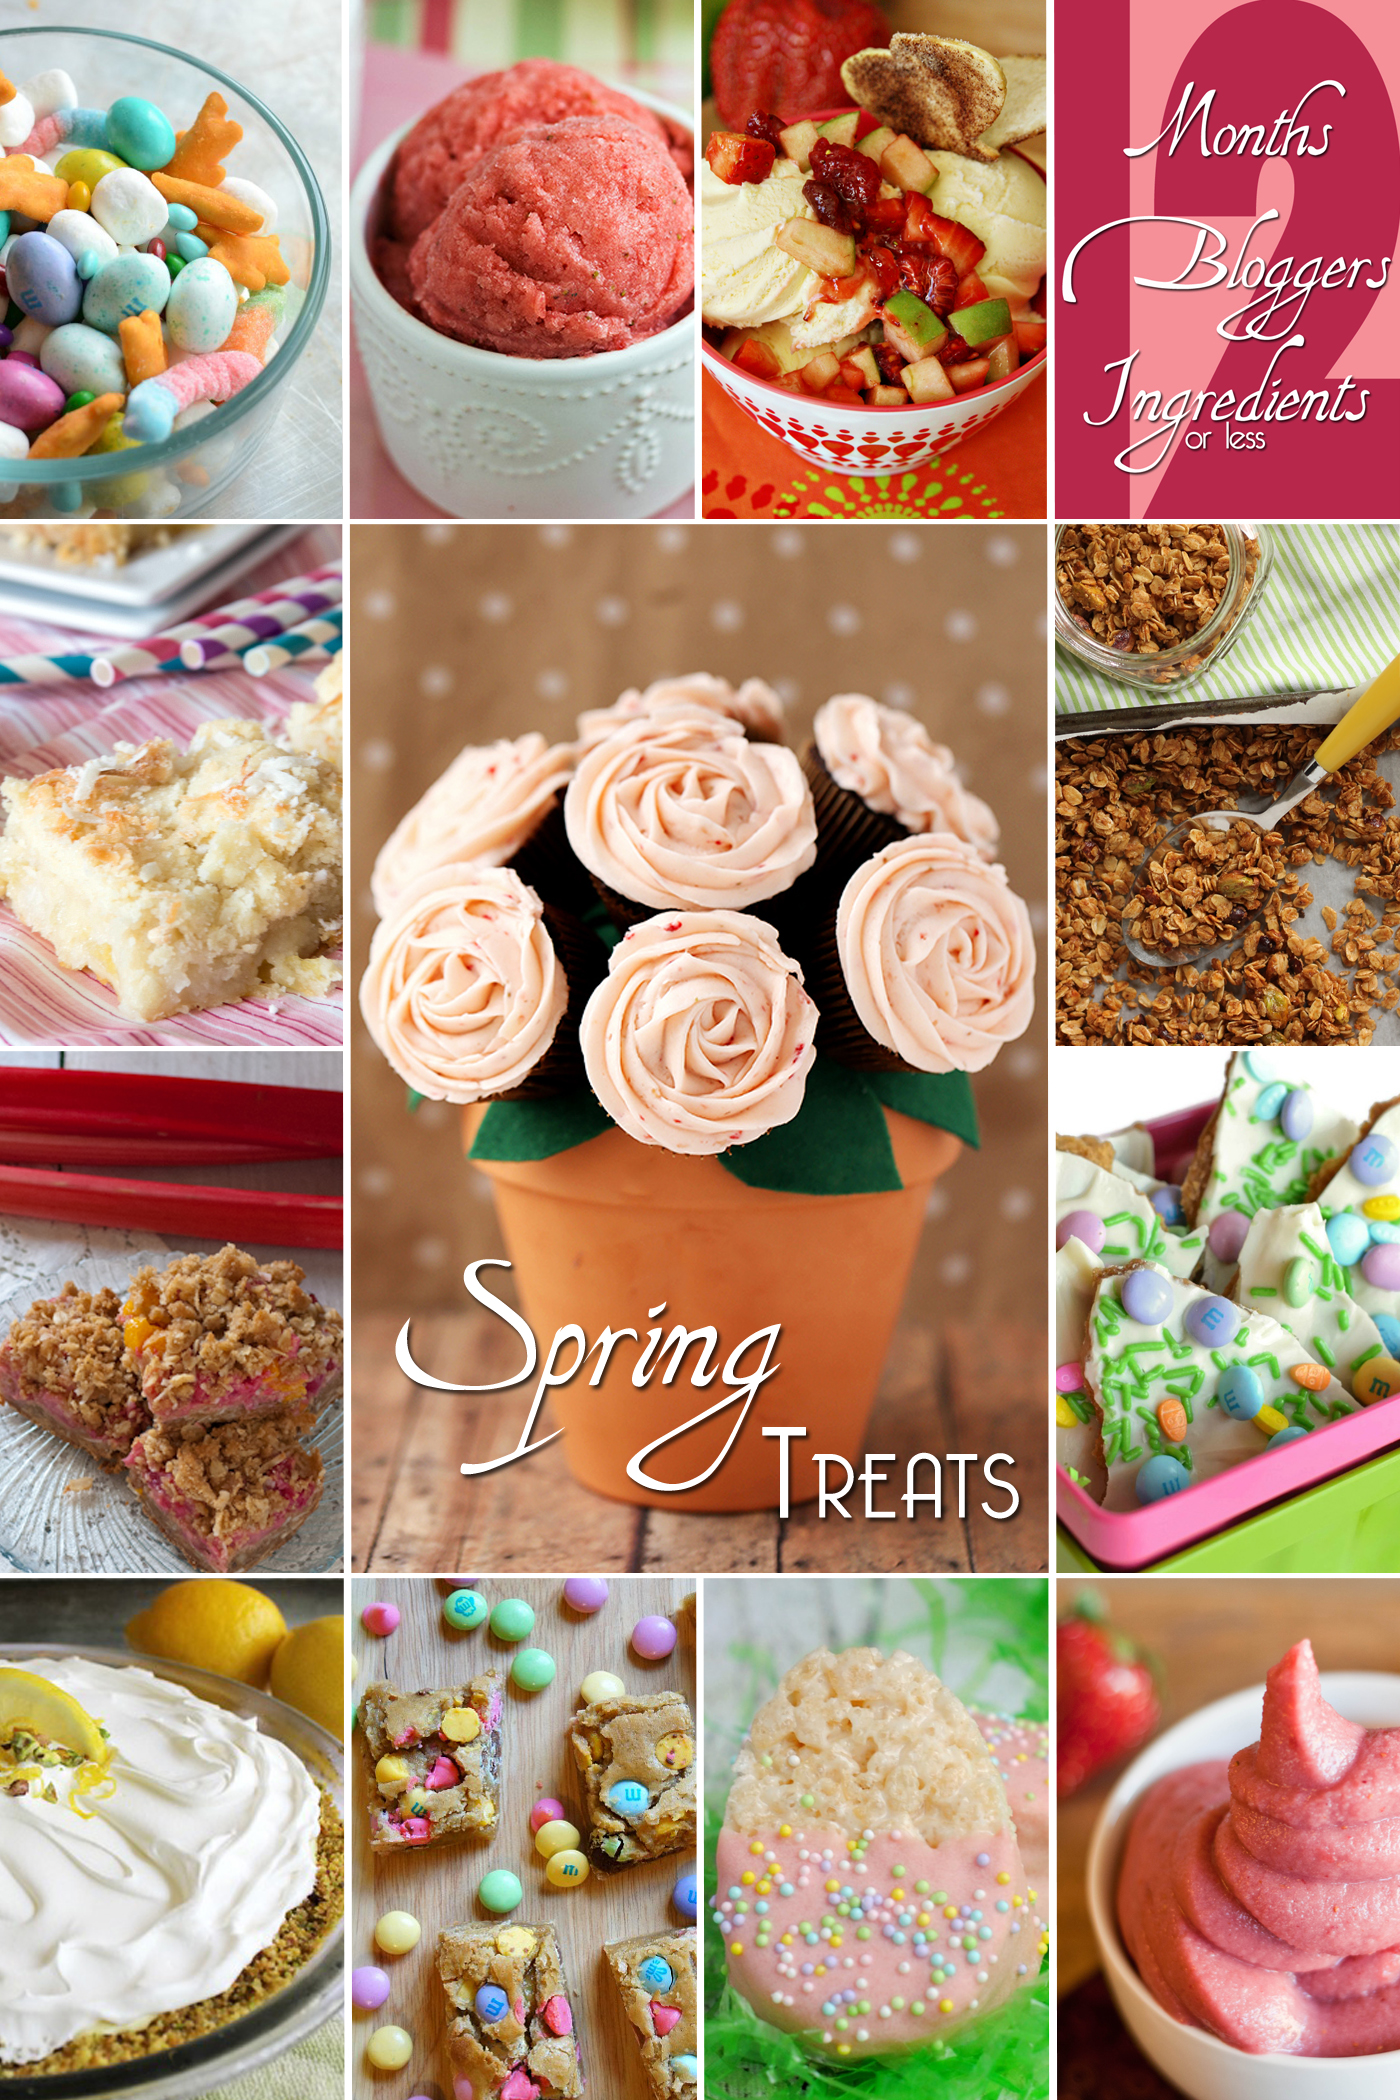 Spring Inspired Recipes